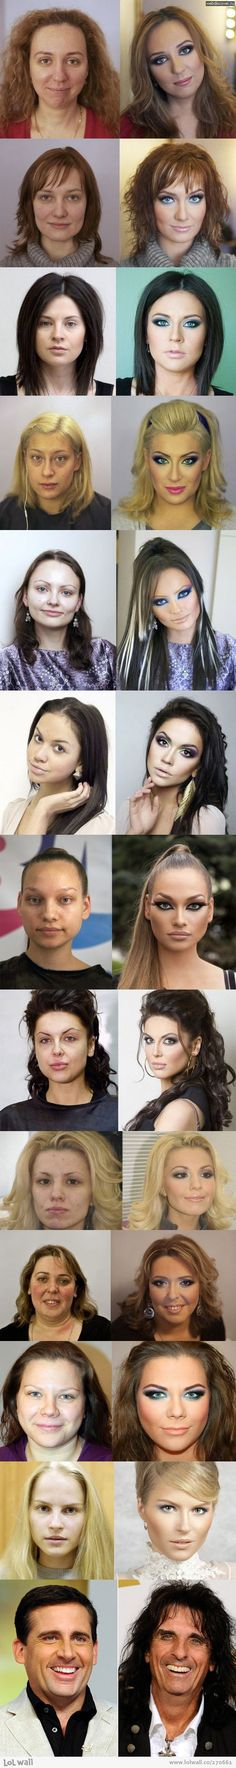 Stripper transformation from www.lolwall.co @Heather Creswell Creswell Parish  How #makeup can change someone? #MakeOverbar